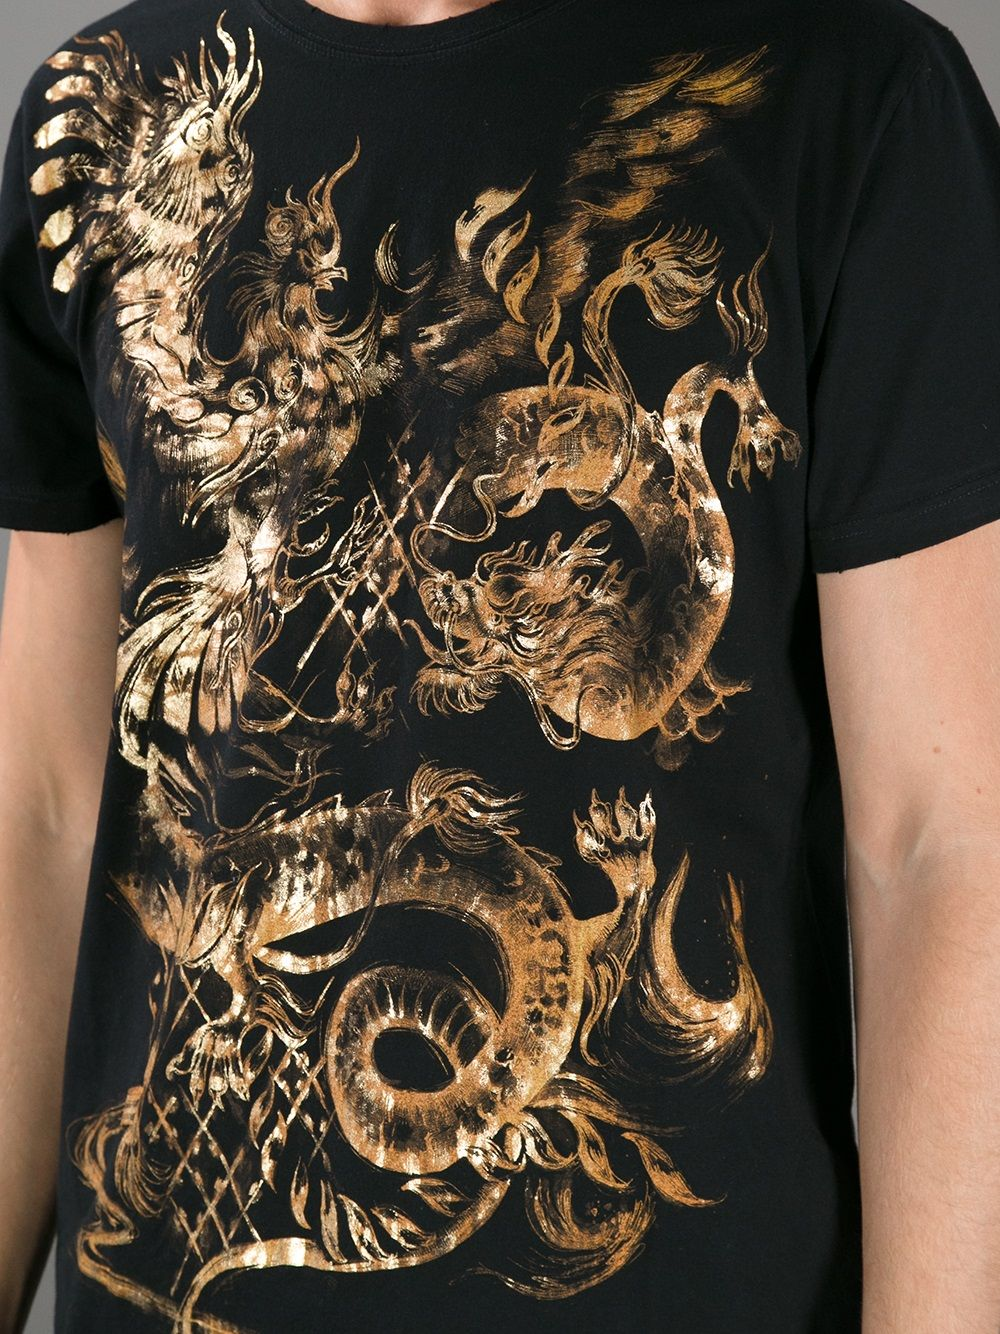 5fa7e132 Balmain Dragon Print T-shirt. | MEN'S STYLE in 2019 | Designer ...